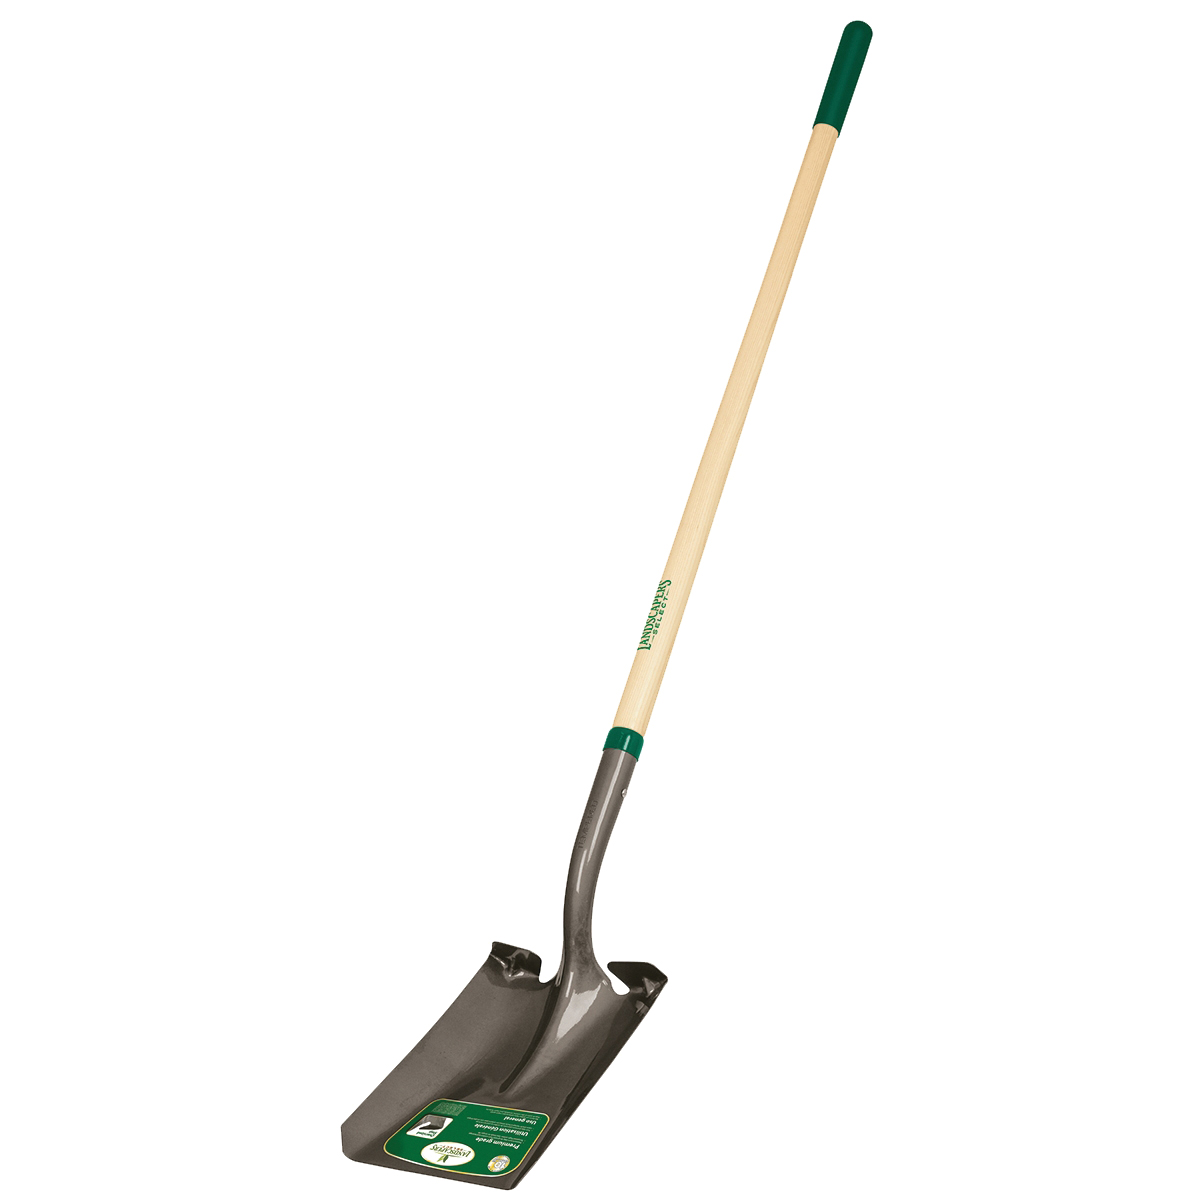 Picture of Landscapers Select 34603 Square Point Shovel, Steel Blade, Wood Handle, 48 in L Handle